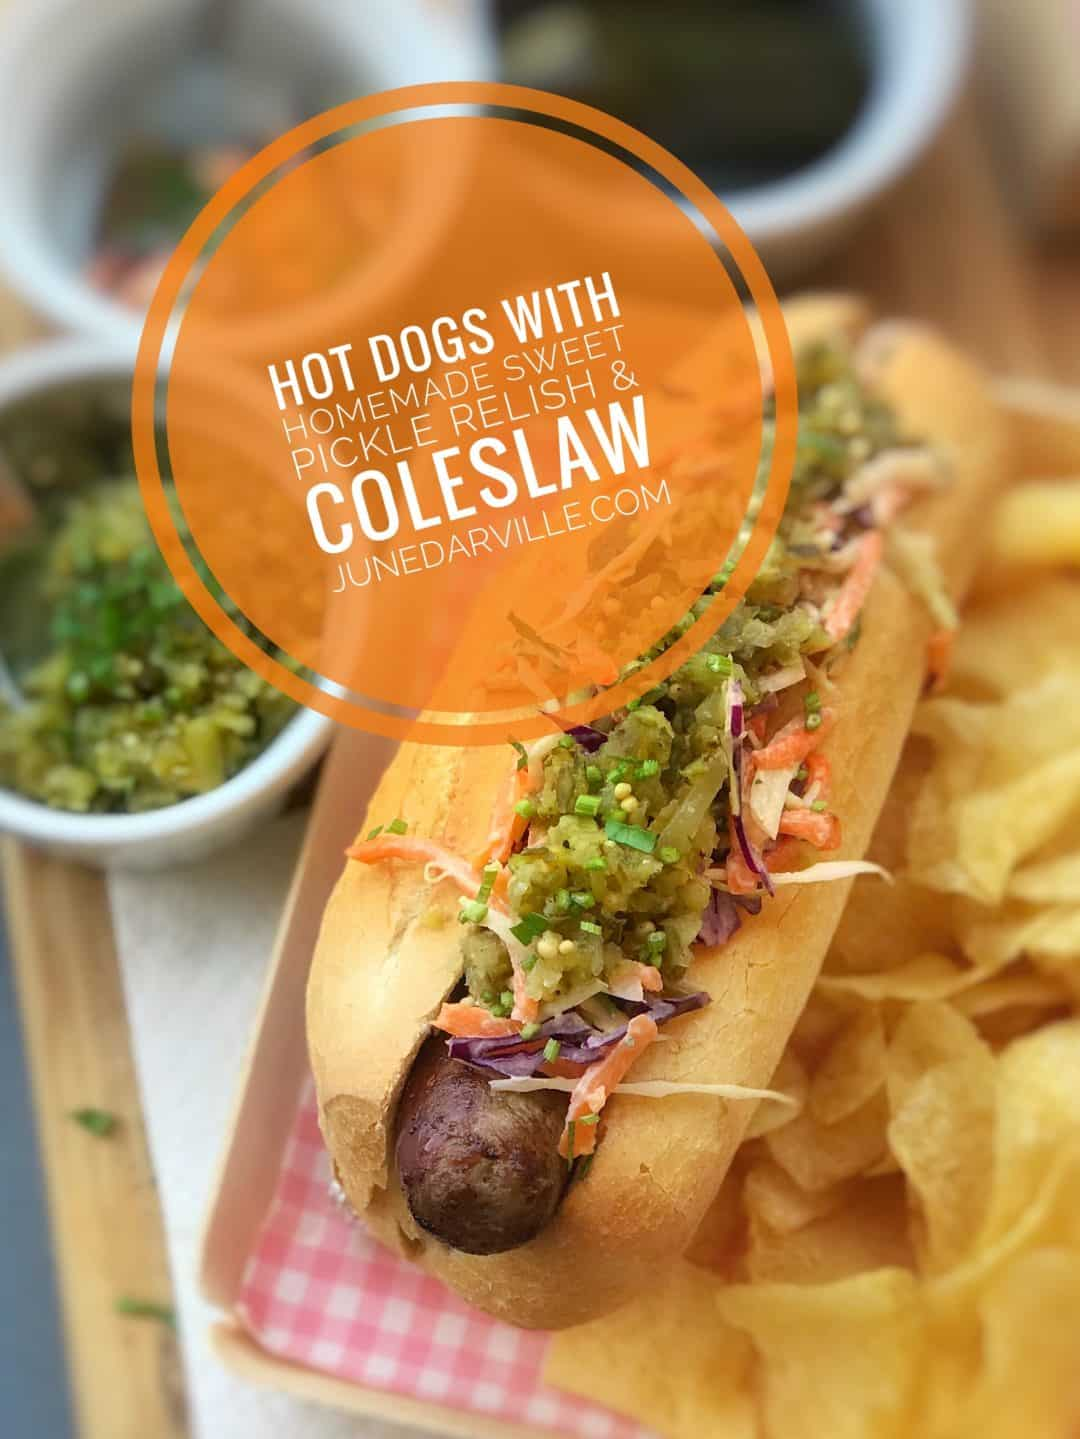 My own classic hot dog recipe with sweet and salty caramelized onions, creamy coleslaw and a homemade 5-minute sweet pickle relish!